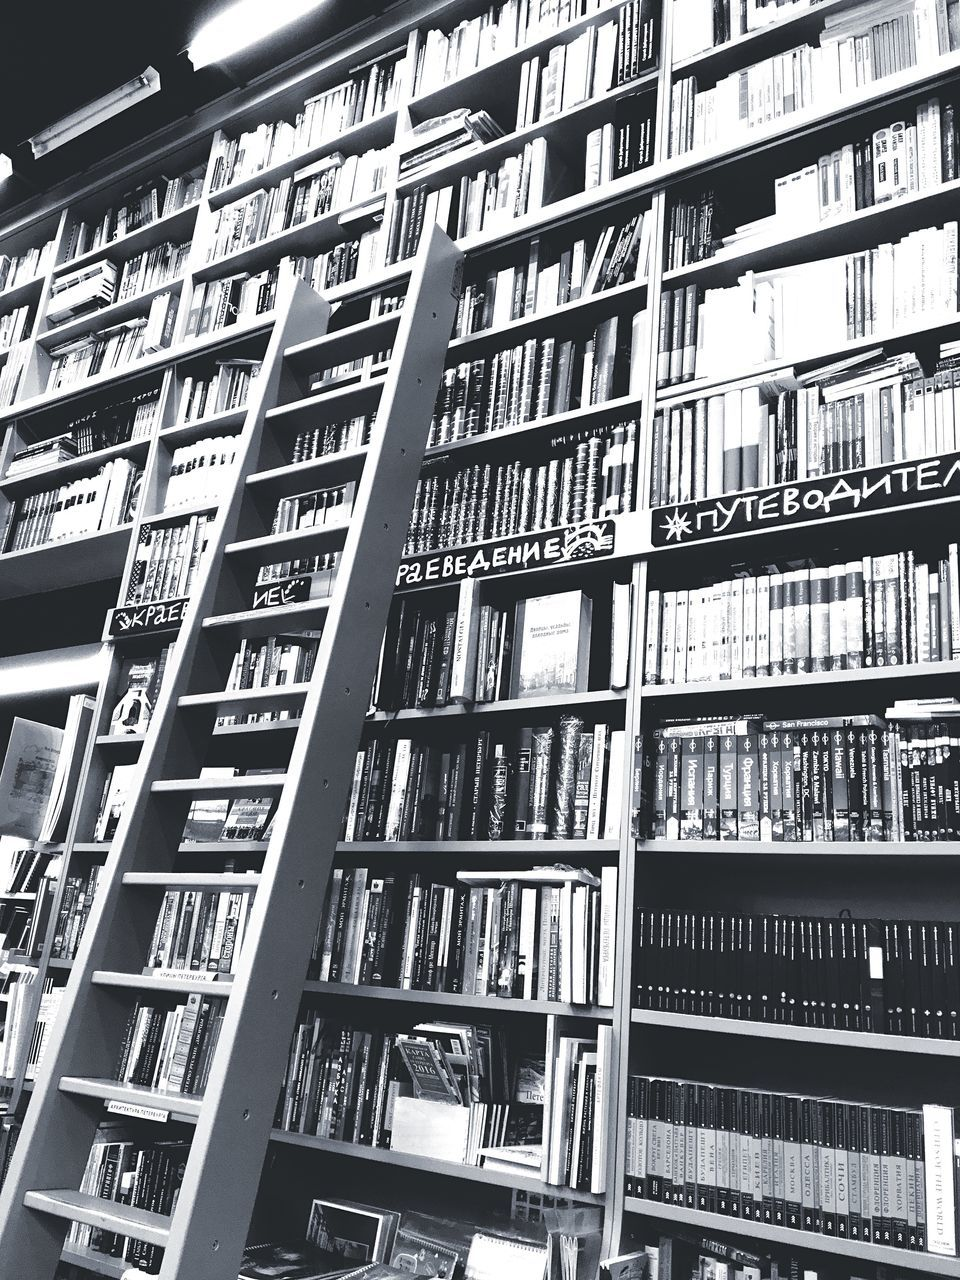 bookshelf, shelf, library, book, indoors, low angle view, education, information medium, large group of objects, no people, literature, backgrounds, architecture, day